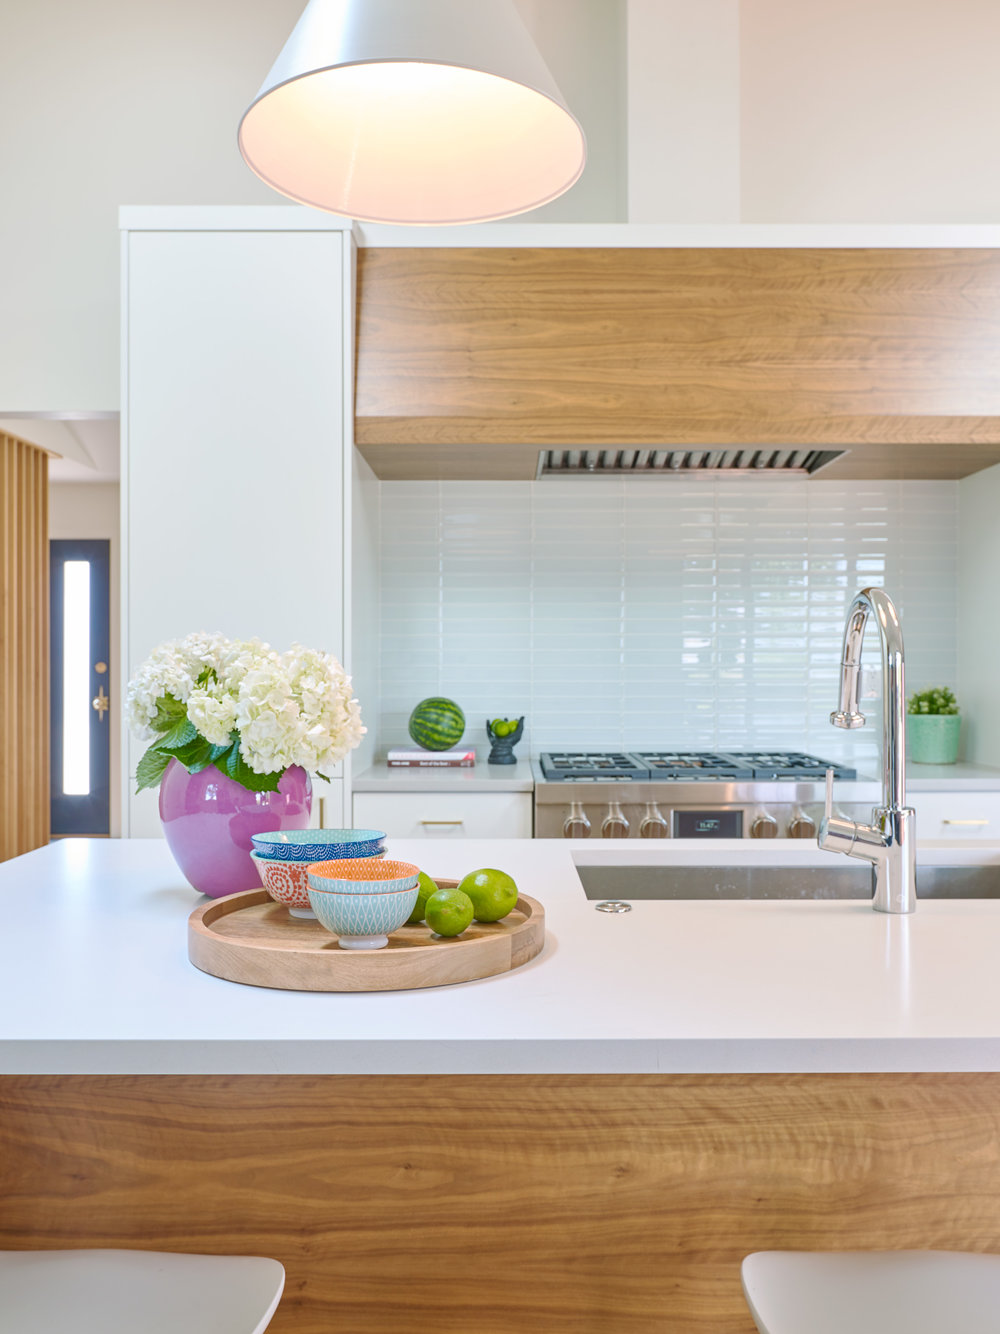 WEB_pam_torbin_kitchen2_72742.jpg